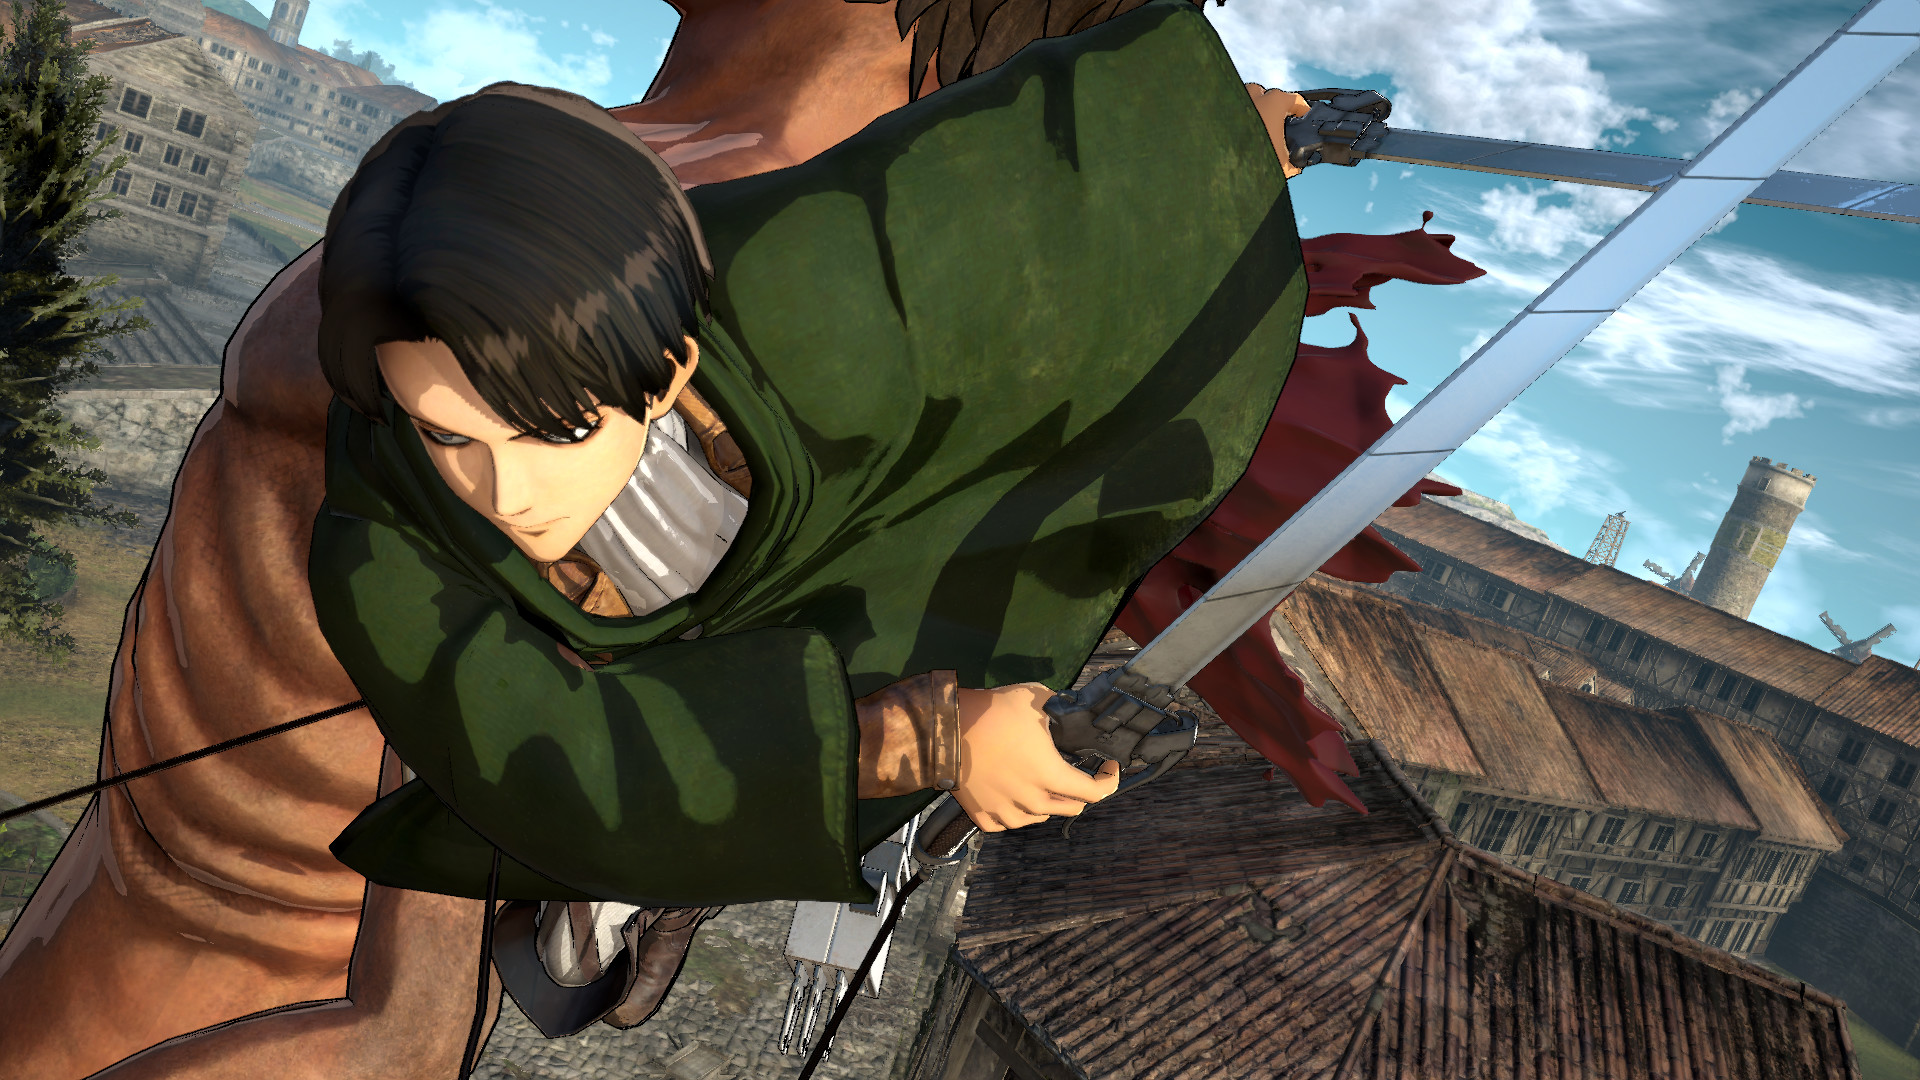 Attack on Titan Full Wings of Freedom Screenshot 2